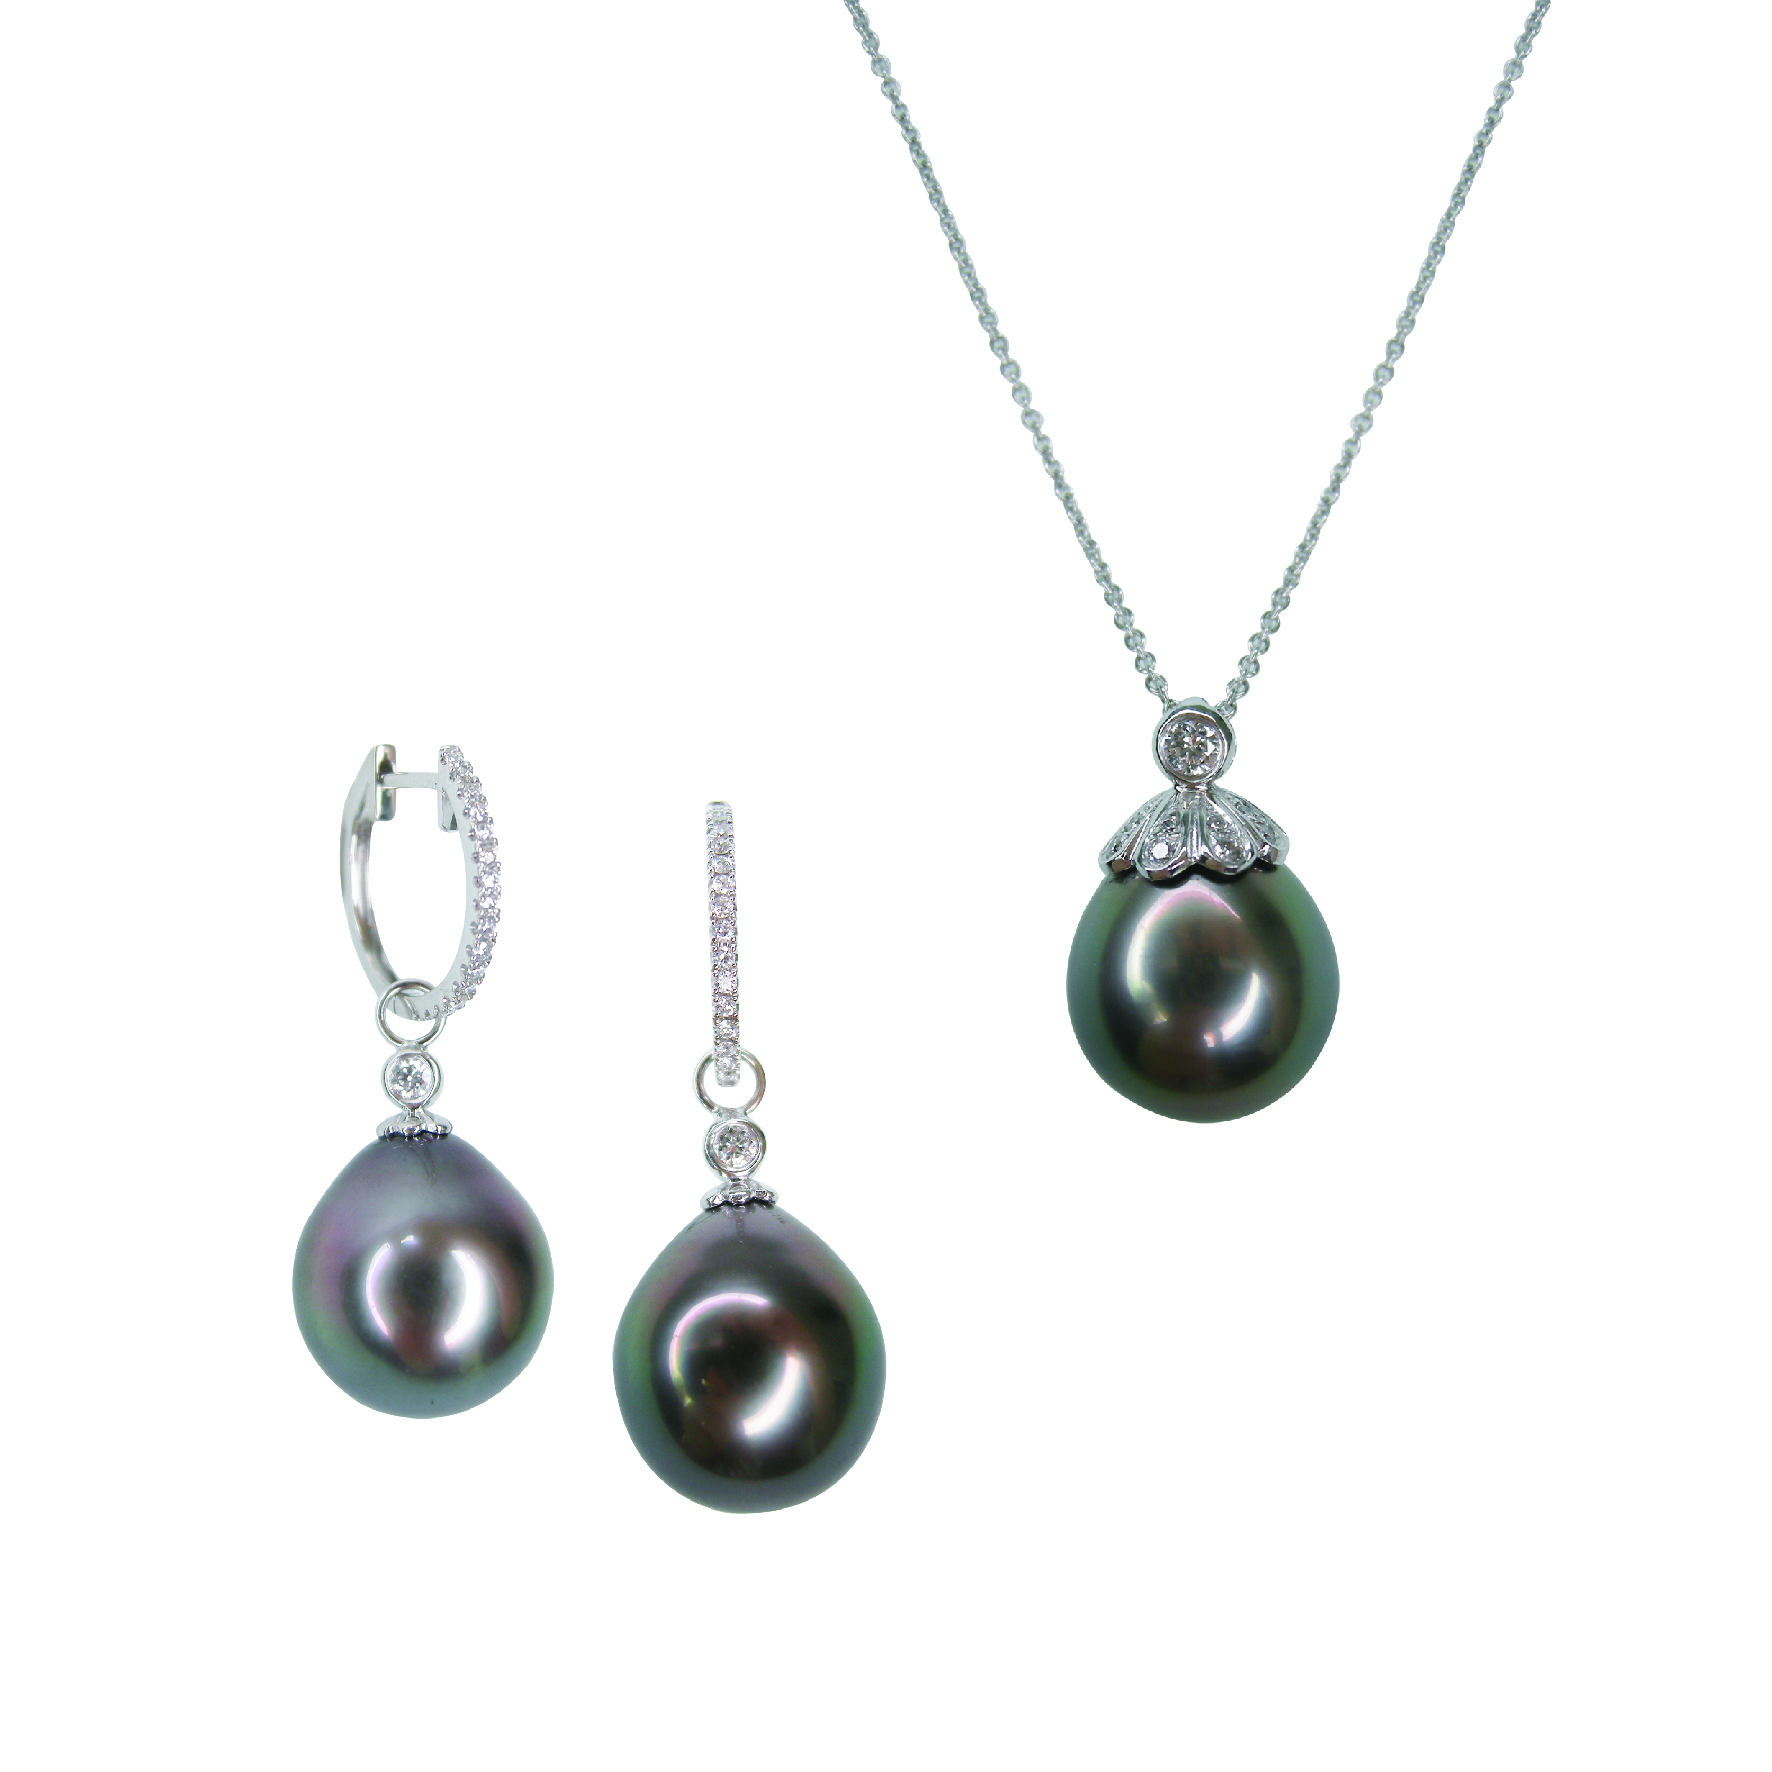 SOUTH SEA BLACK PEARL AND DIAMOND EARRINGS AND NECKLACE BESPOKE FINE JEWELLERY BY SHAHINA HATTA HONG KONG